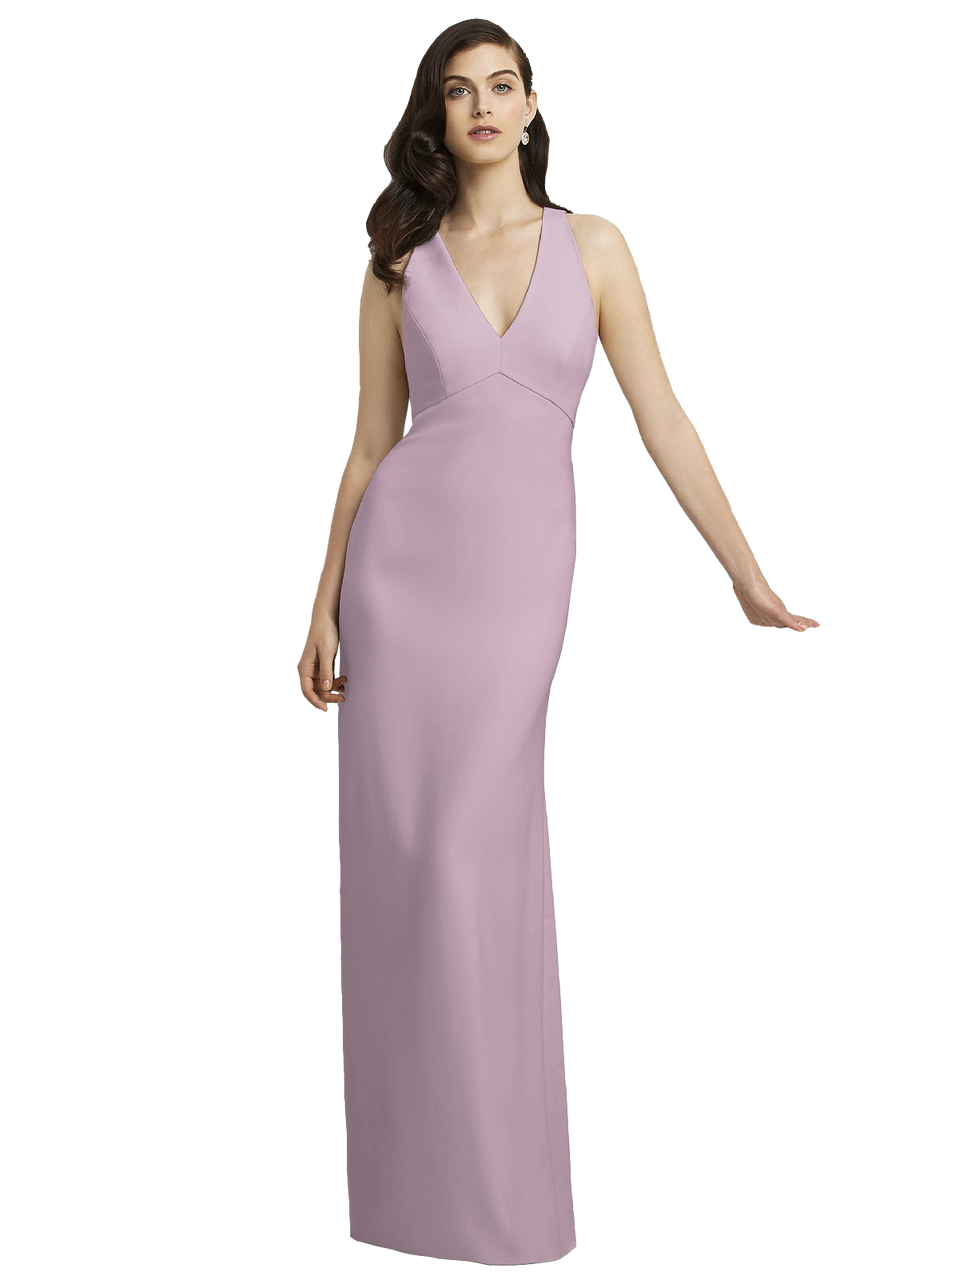 Dessy collection 2938 bridesmaid dress shop the dessy group 2938 bridesmaid dress online at bridals by lori home of say yes ombrellifo Gallery